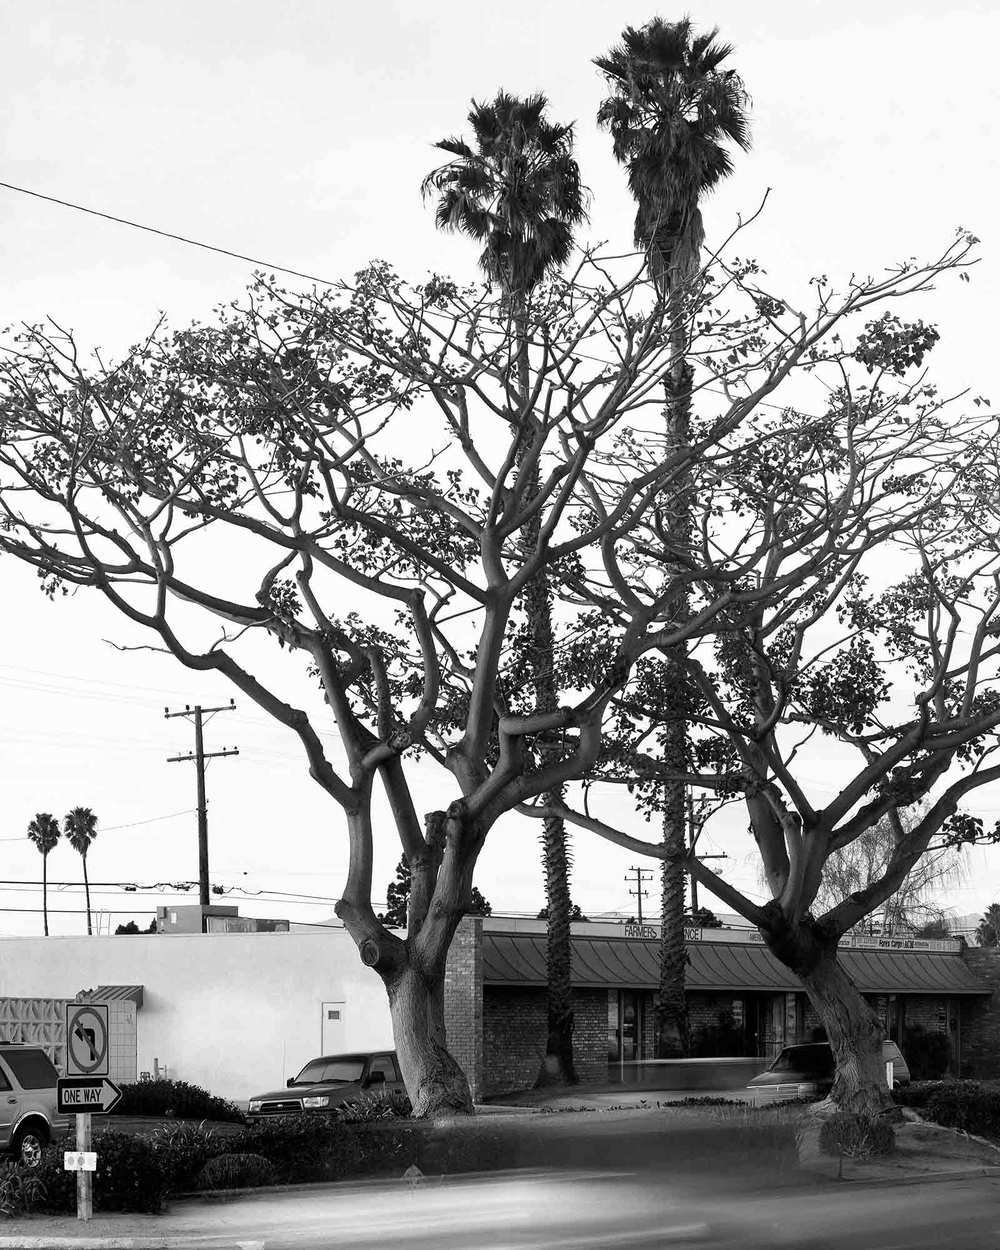 14-Coral-Tree-#4,-Camarillo,-2004.jpg